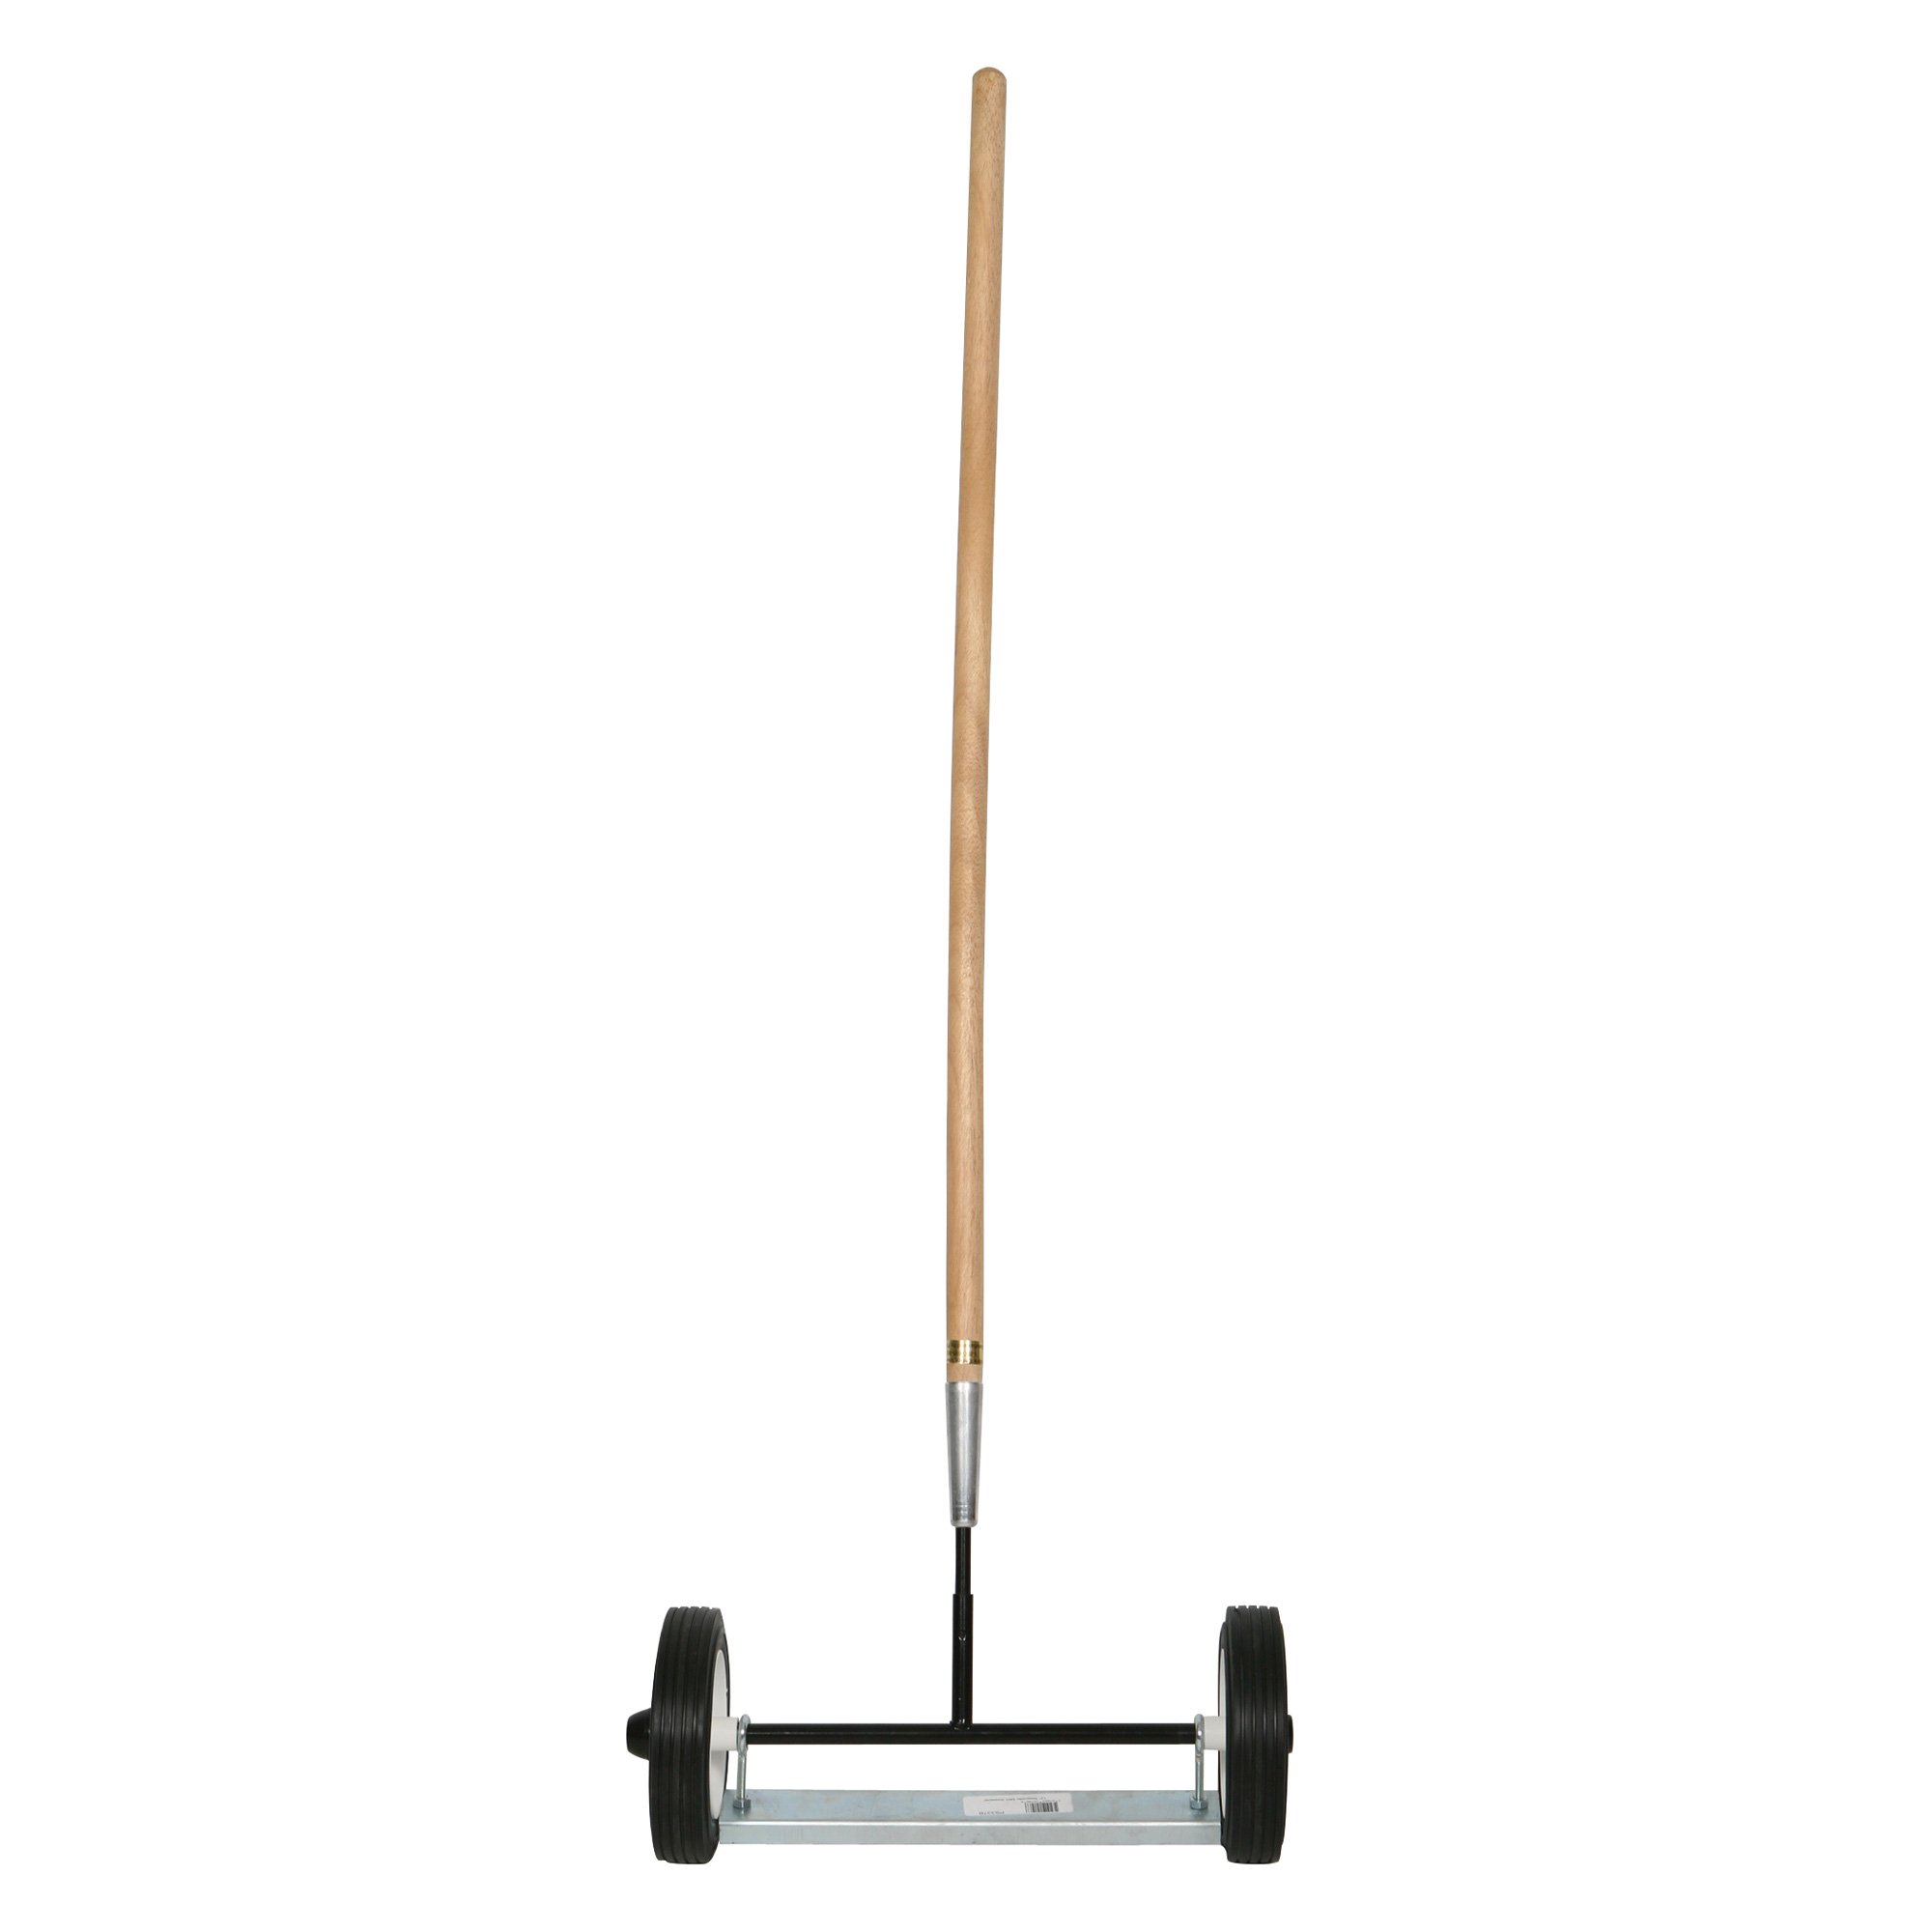 The ATTRACTOR II Magnetic Mini Sweeper - 12in., Model# PS337B